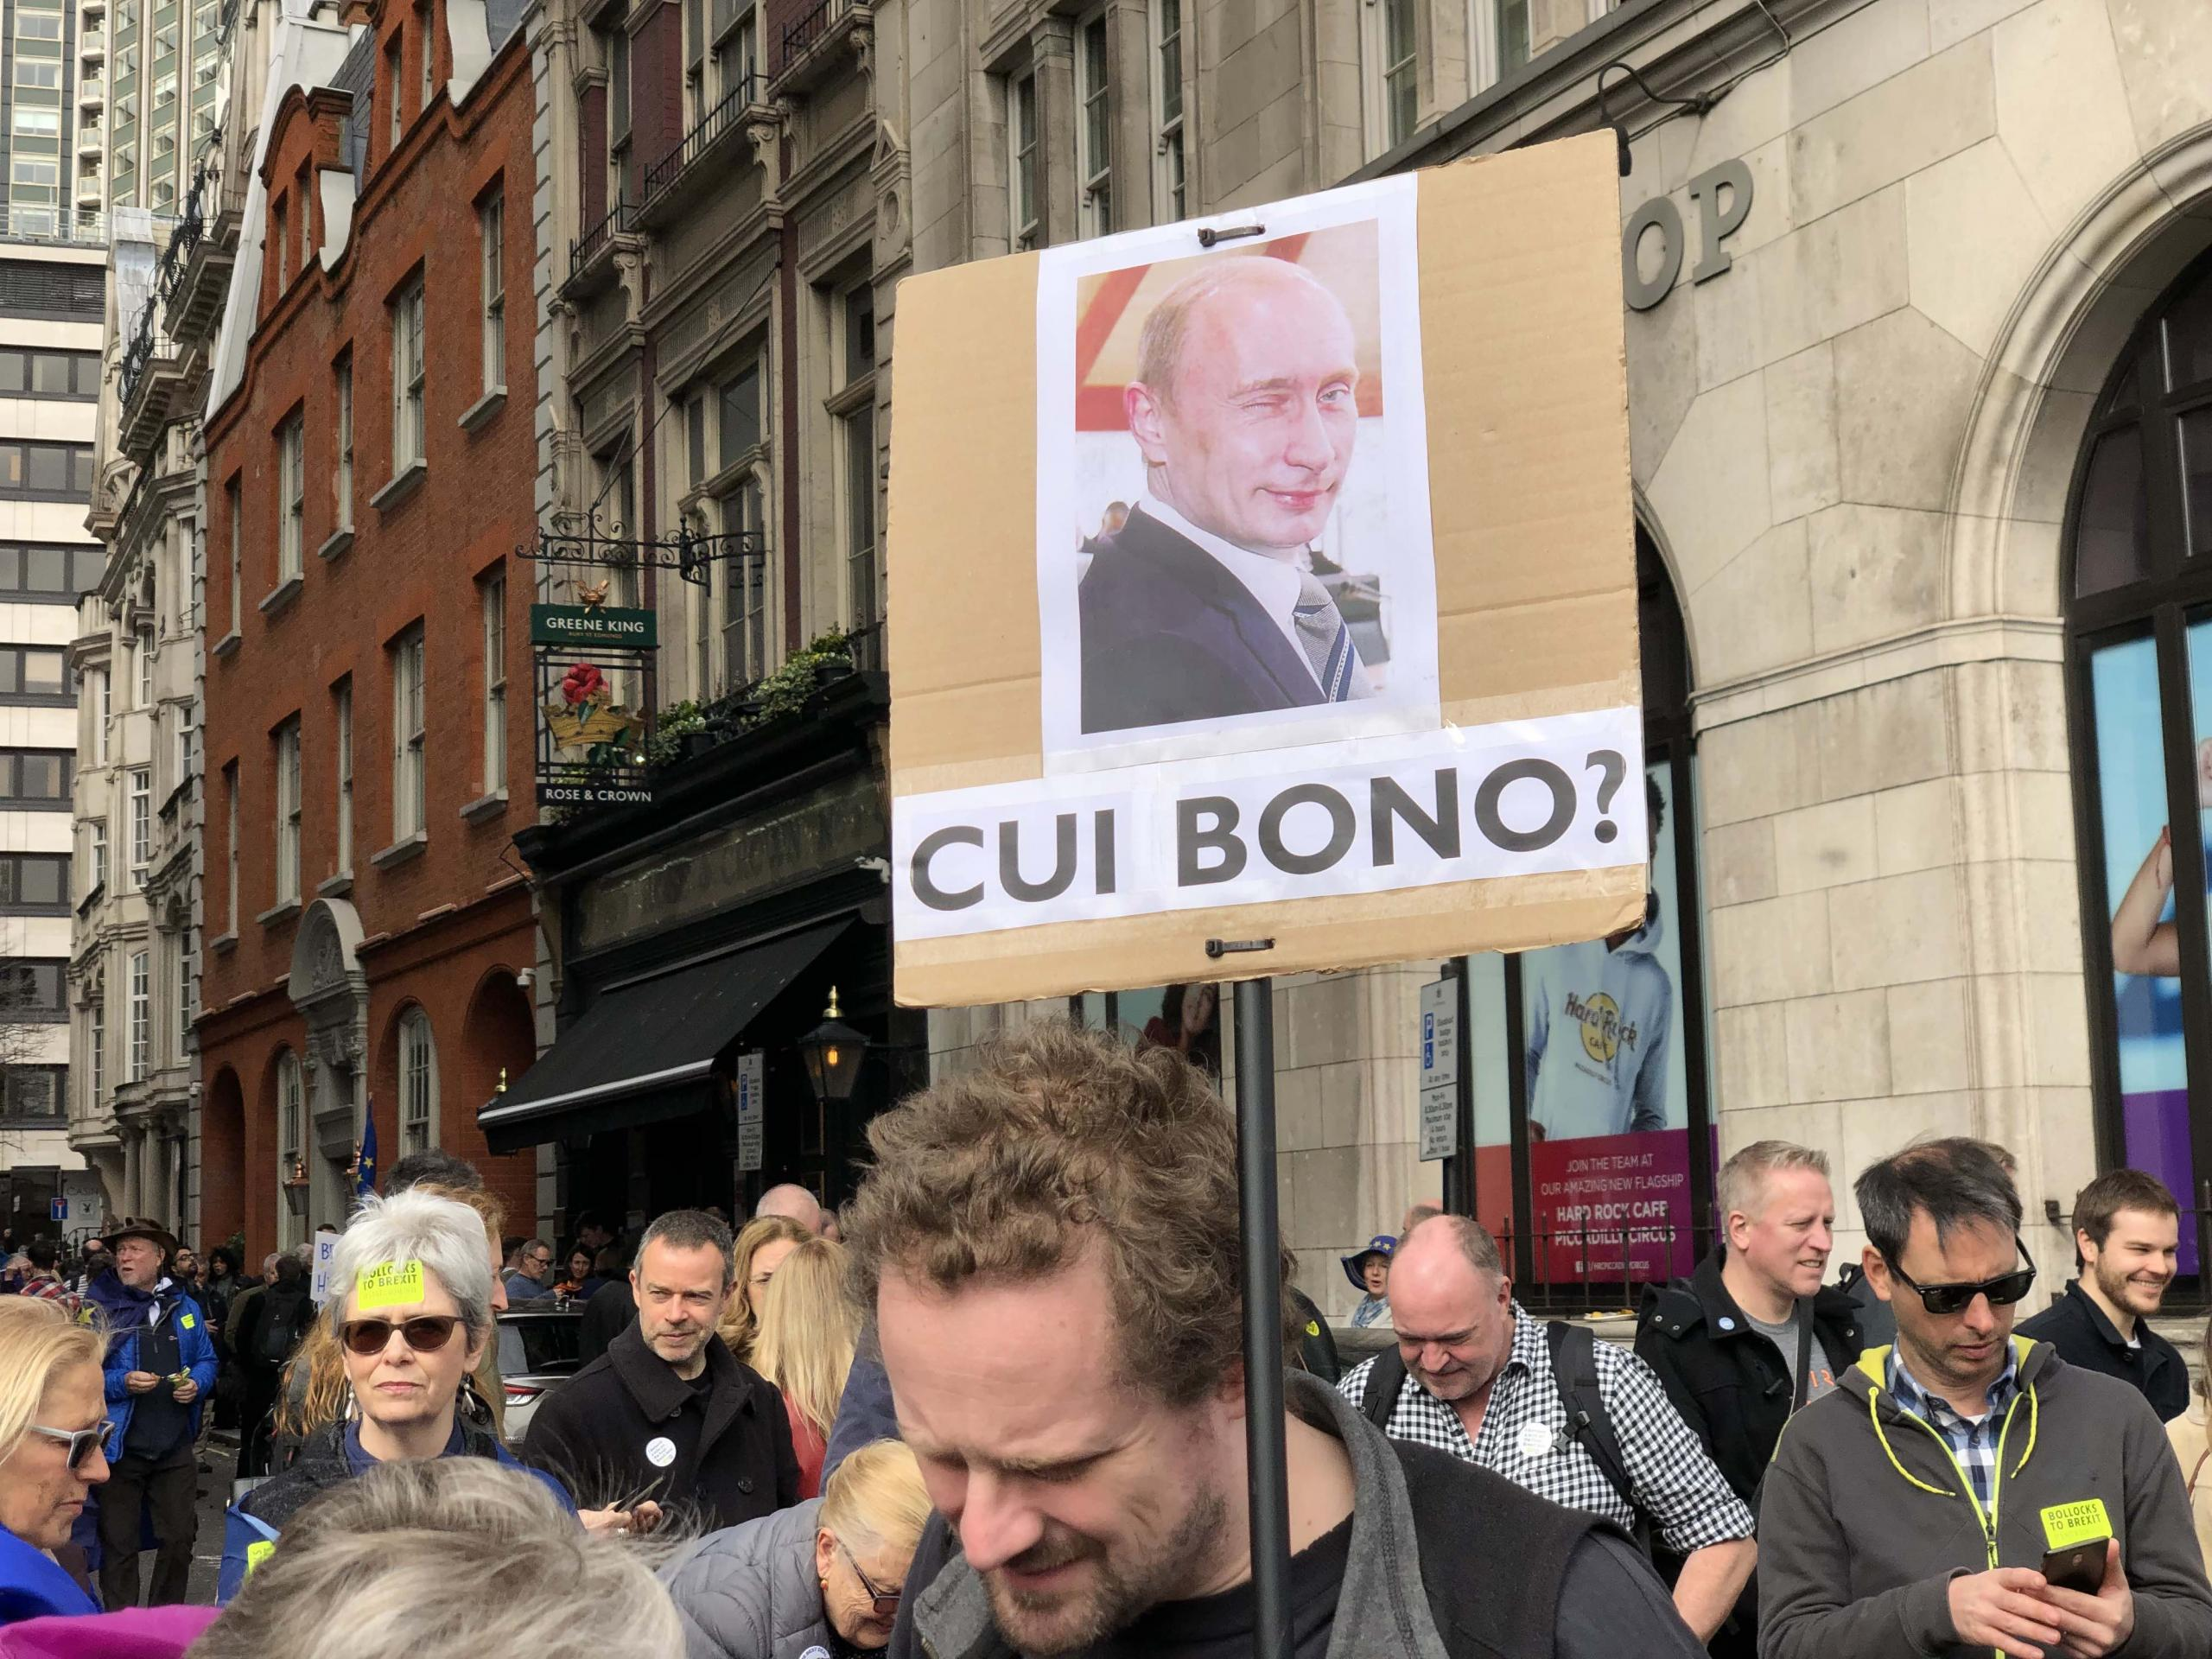 Brexit benefits Moscow. People's Vote March, London.